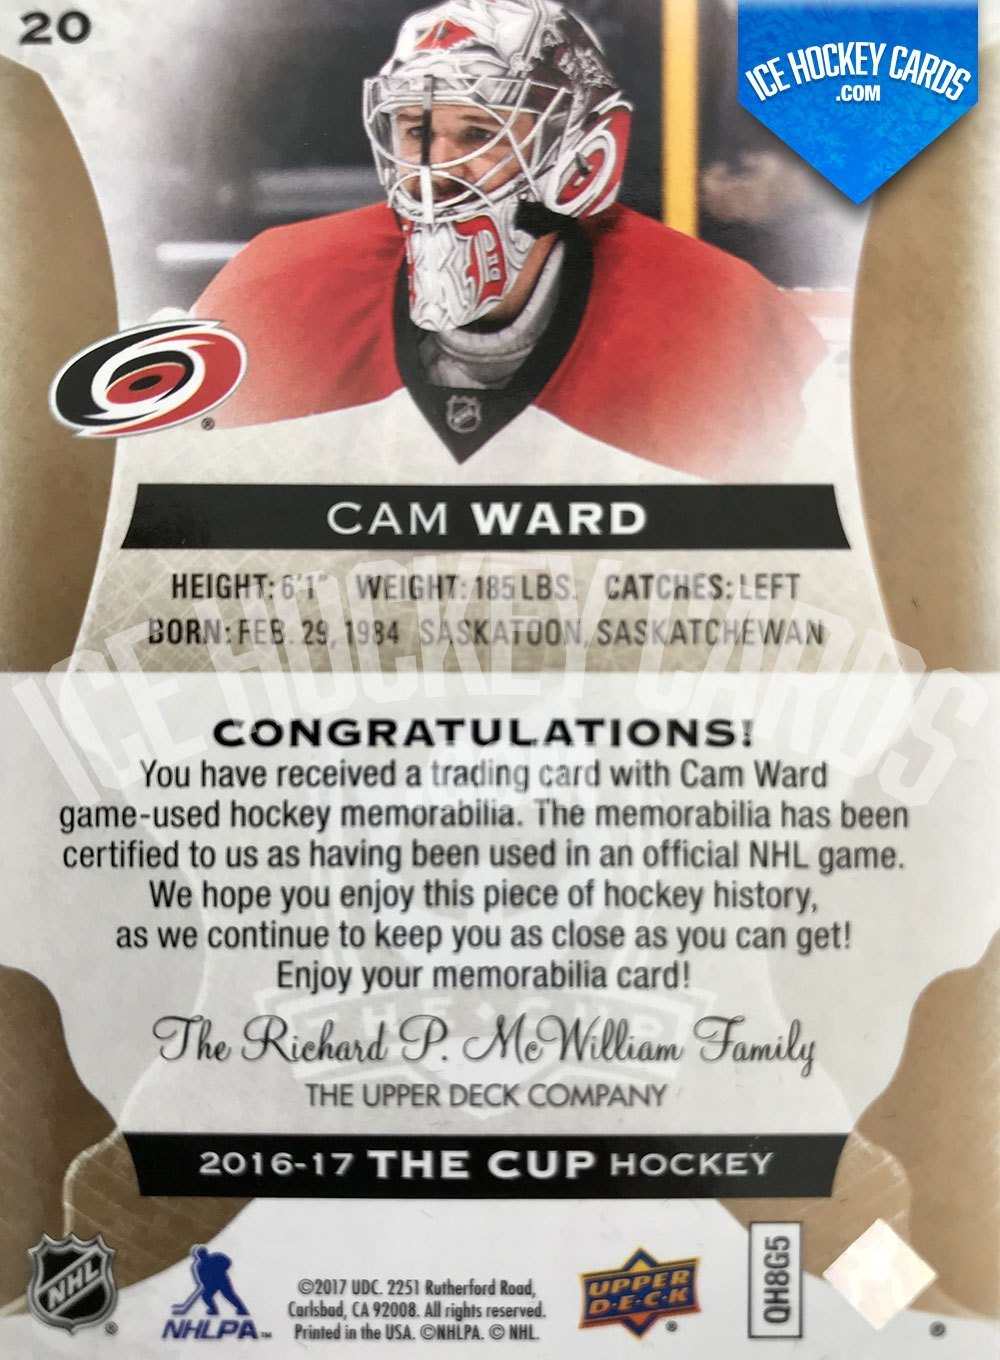 Upper Deck - The Cup 2016-17 - Cam Ward Premium Patch Card # to 8 back RARE